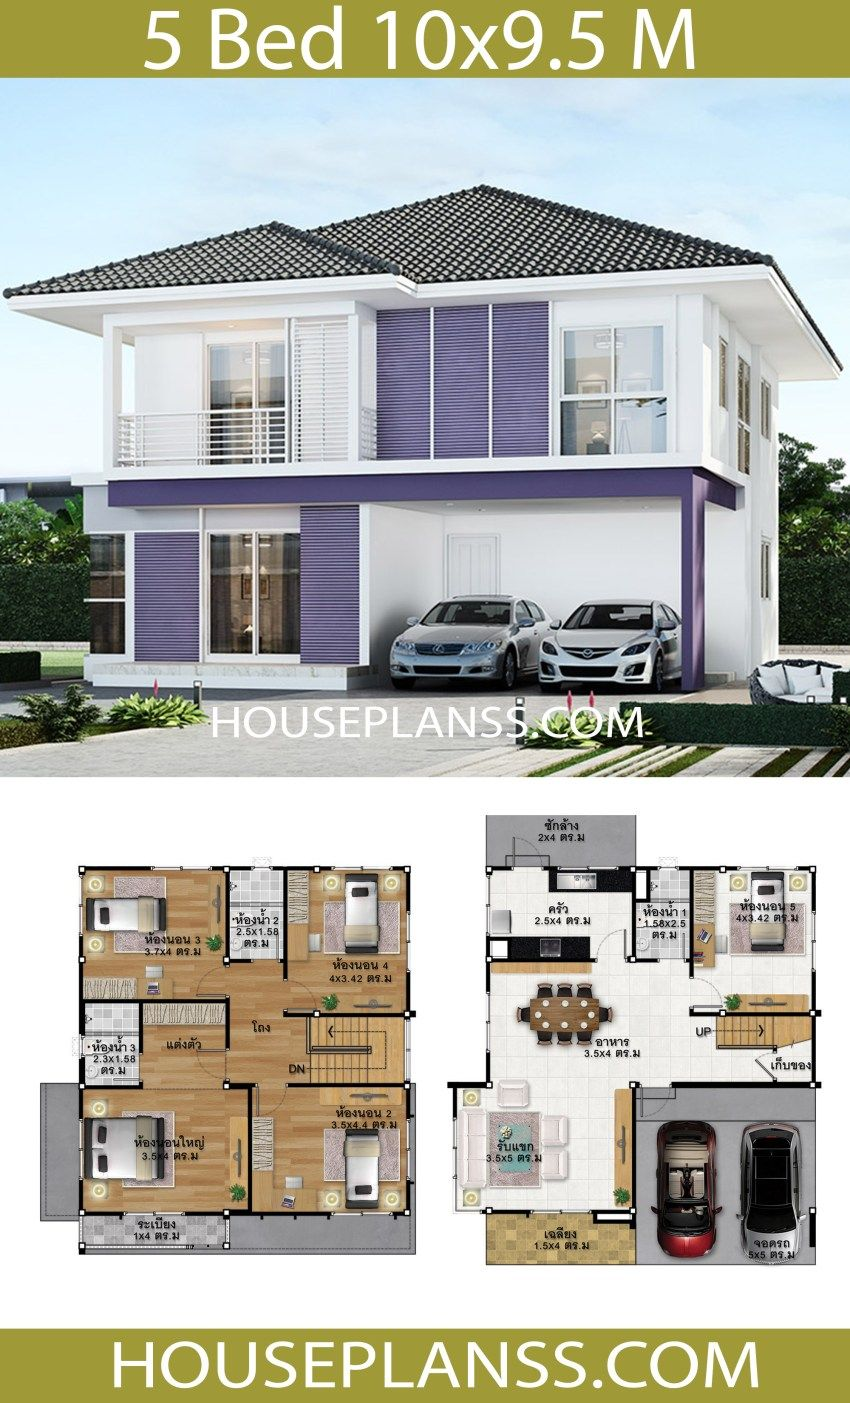 House Plans Idea 10x9 5 With 5 Bedrooms House Plans S Modern House Plans Beautiful House Plans Model House Plan